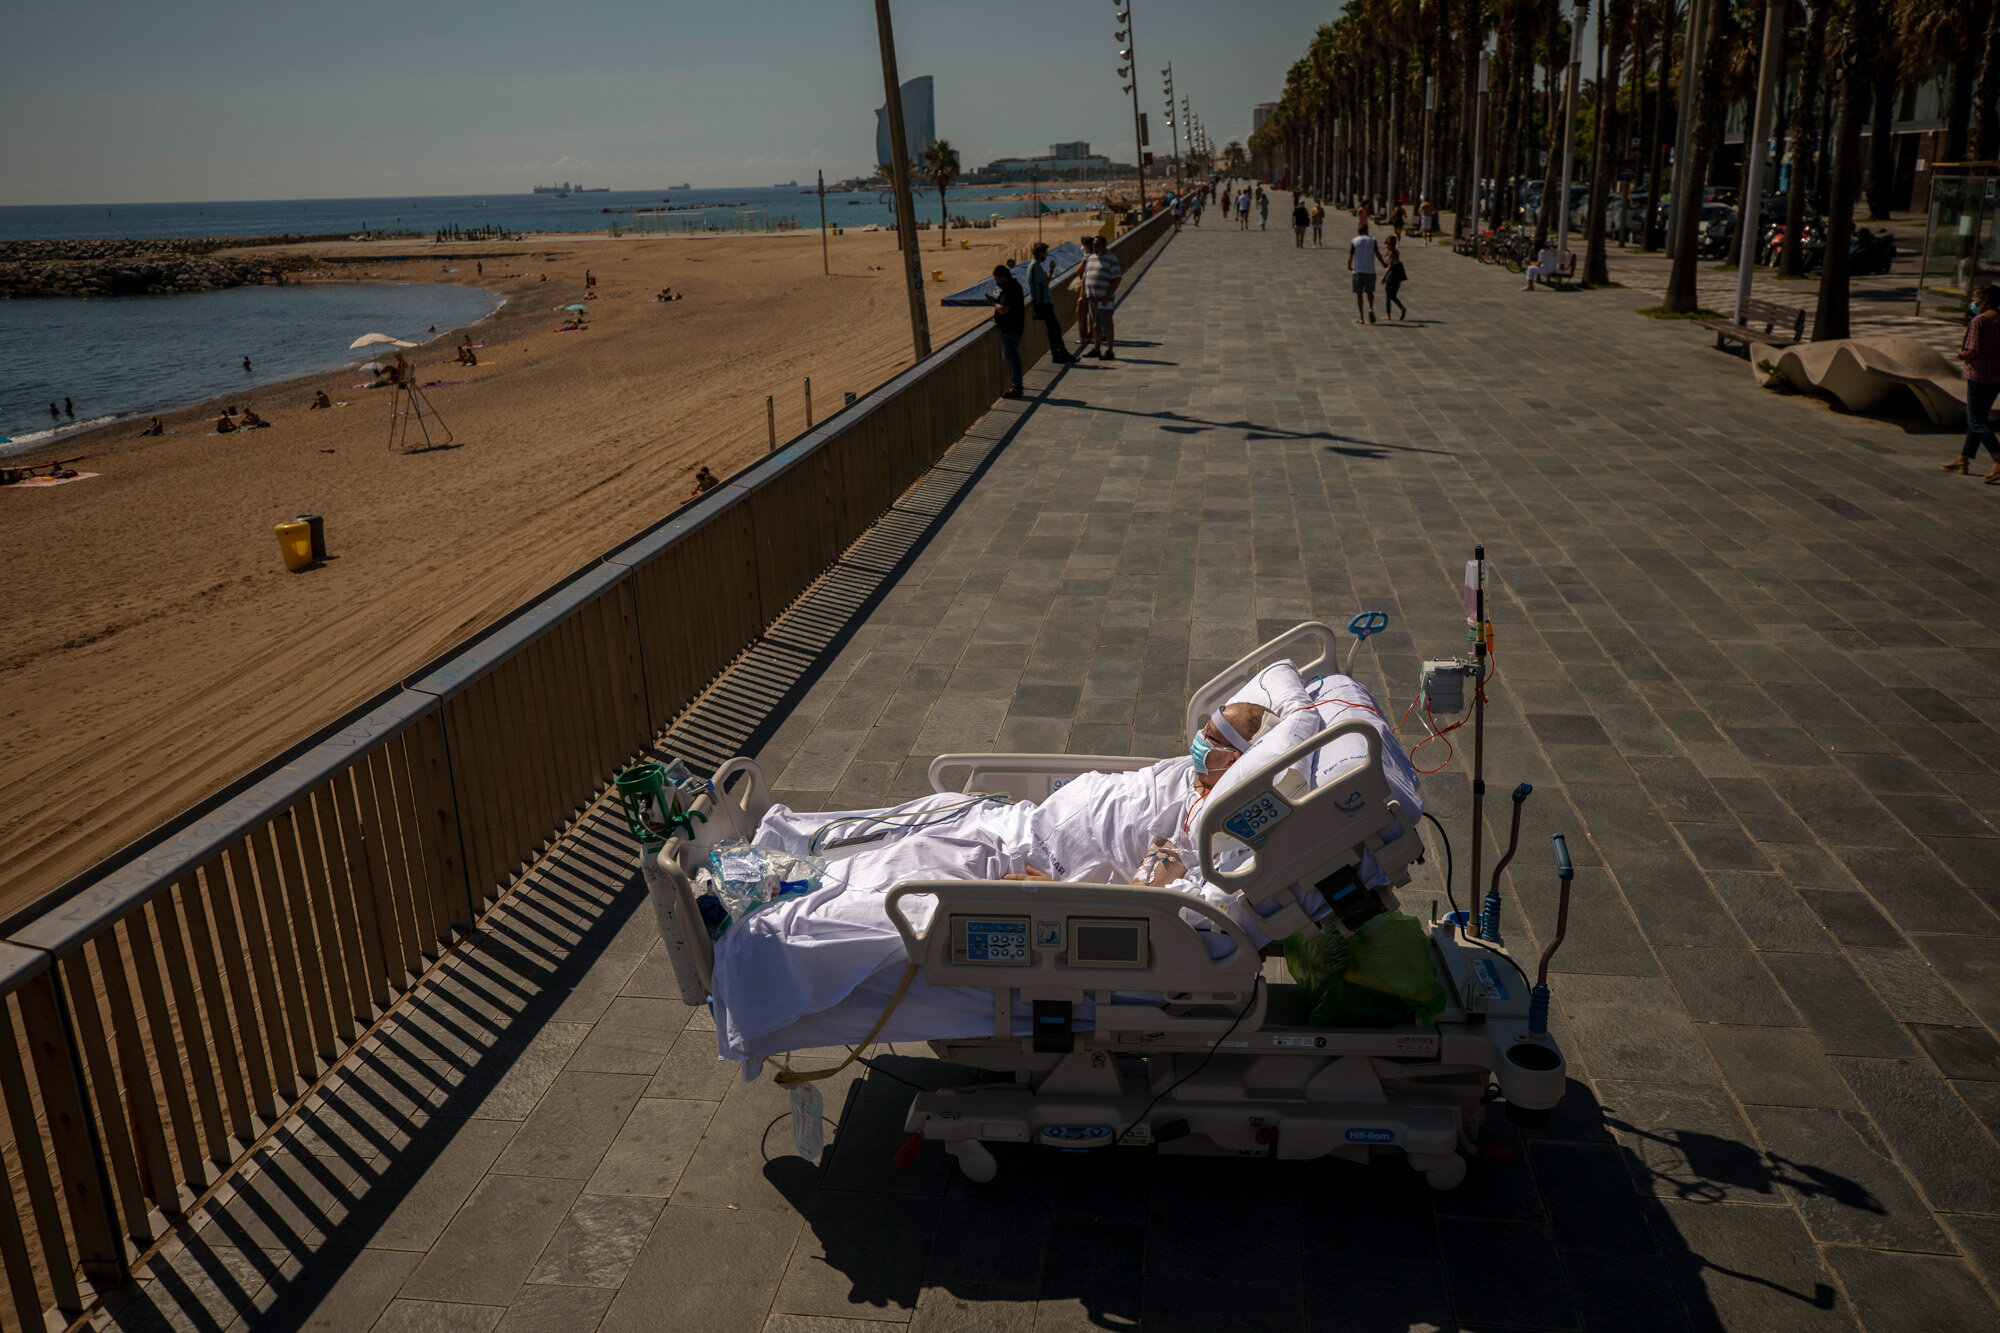 Francisco Espana looks at the Mediterranean sea from a promenade next to the Hospital del Mar in Barcelona, Spain, on Sept. 4, 2020. After 52 days in the hospital's intensive care unit due to the coronavirus, Francisco was allowed by his doctors to spend almost ten minutes at the seaside as part of his recovery therapy. (AP Photo/Emilio Morenatti)